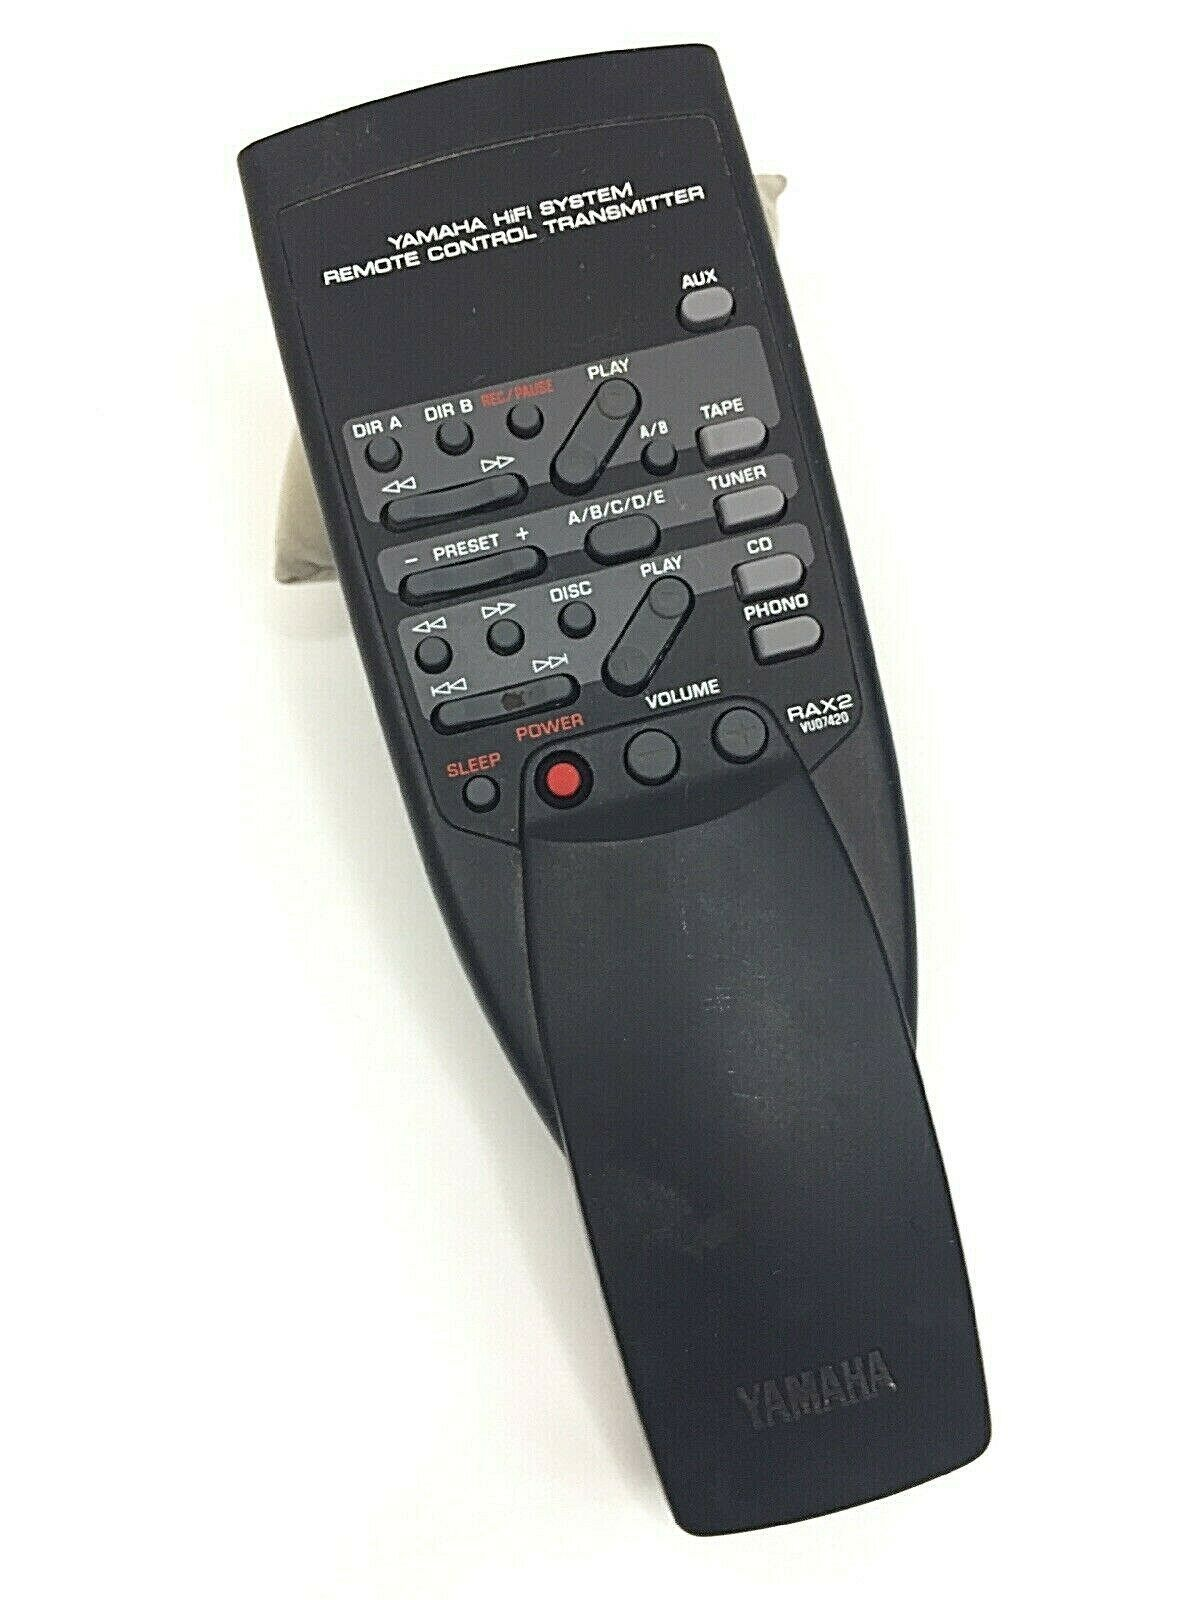 Yamaha Remote Control: 1 customer review and 77 listings